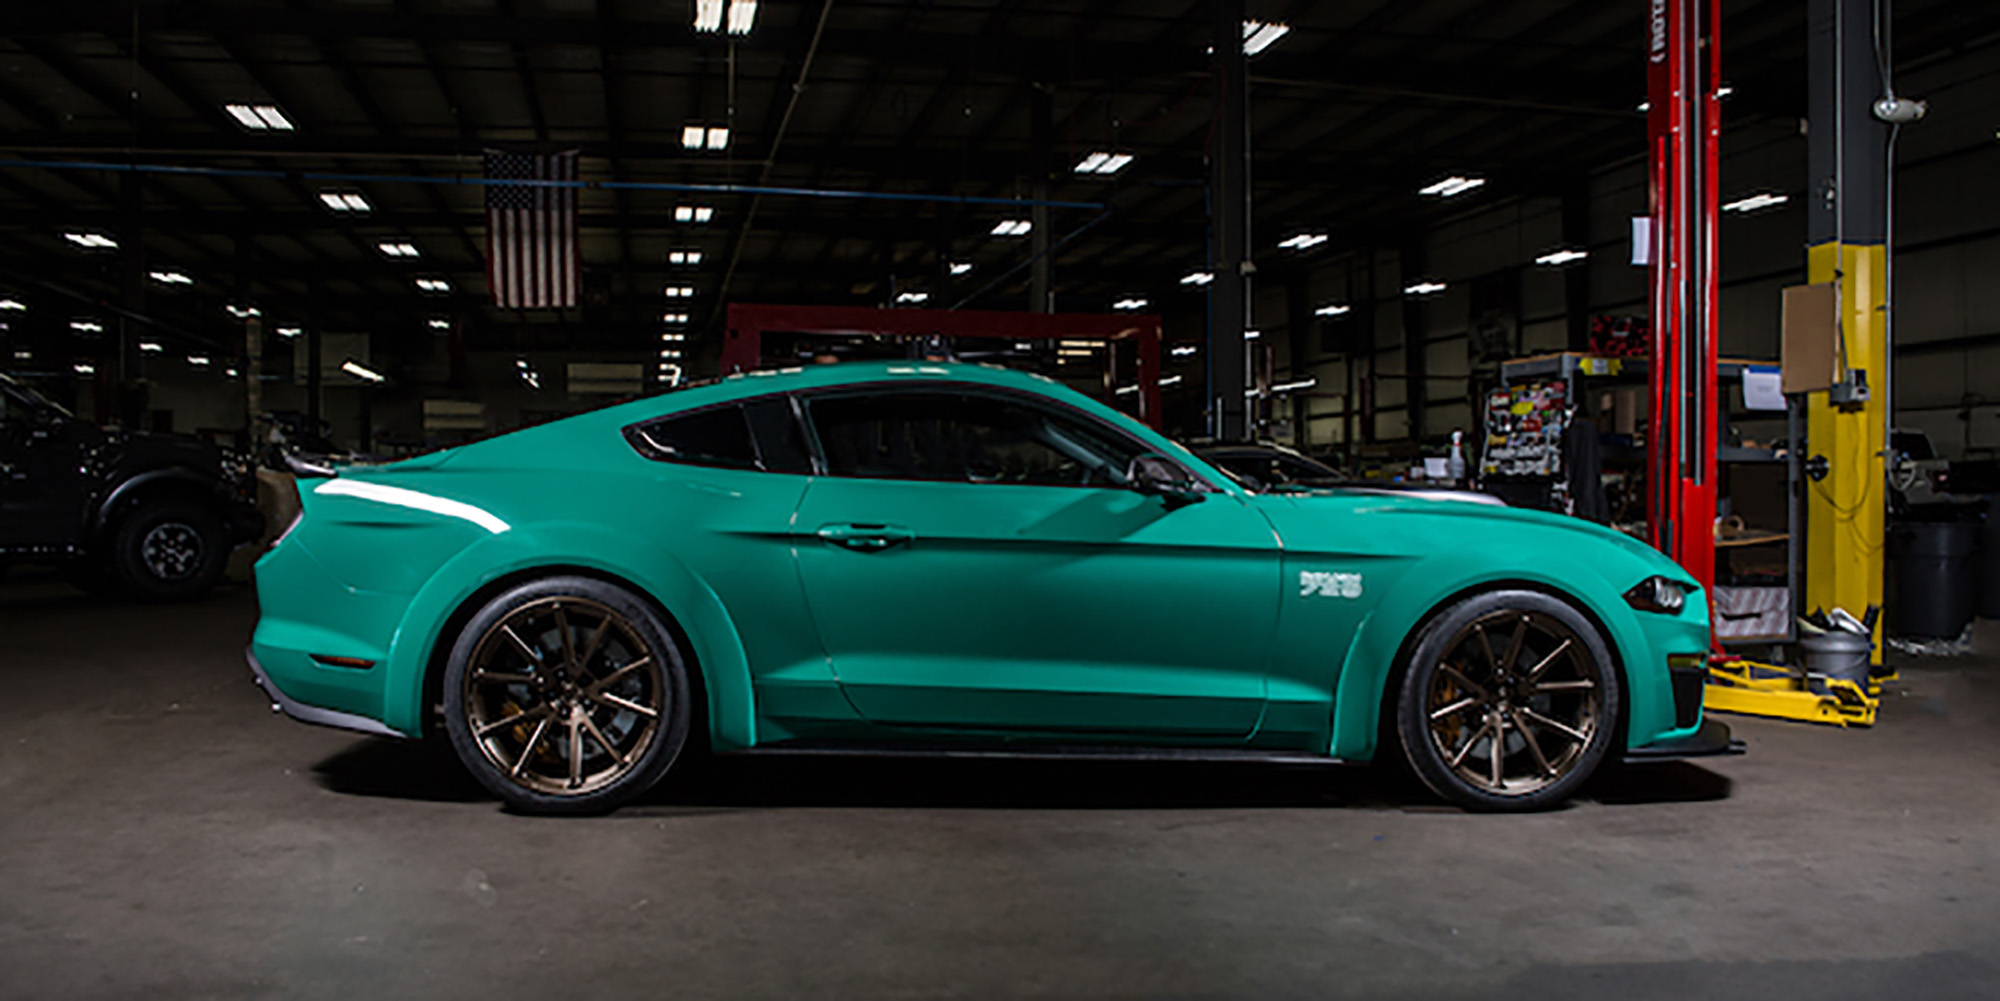 2018 Ford Mustang Roush 729 makes LA debut - Photos (1 of 4) Mustang